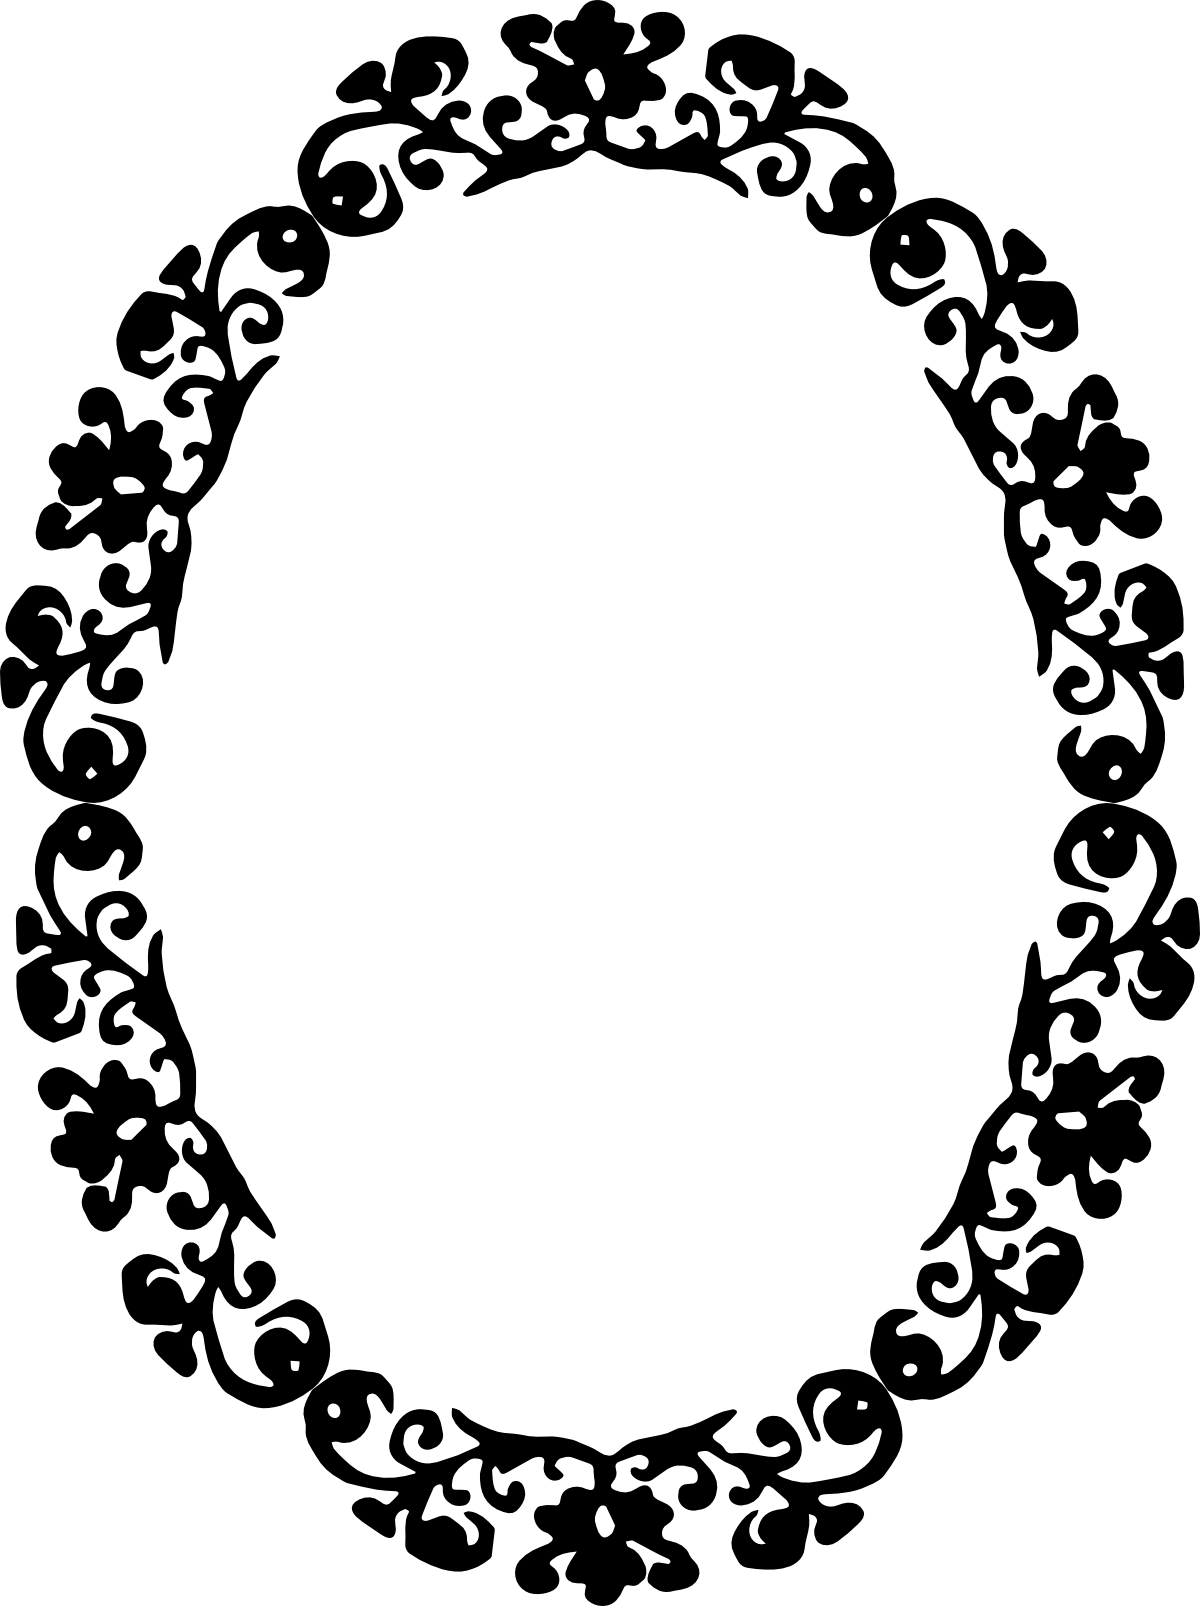 oval outline border clipart 20 free Cliparts | Download ...